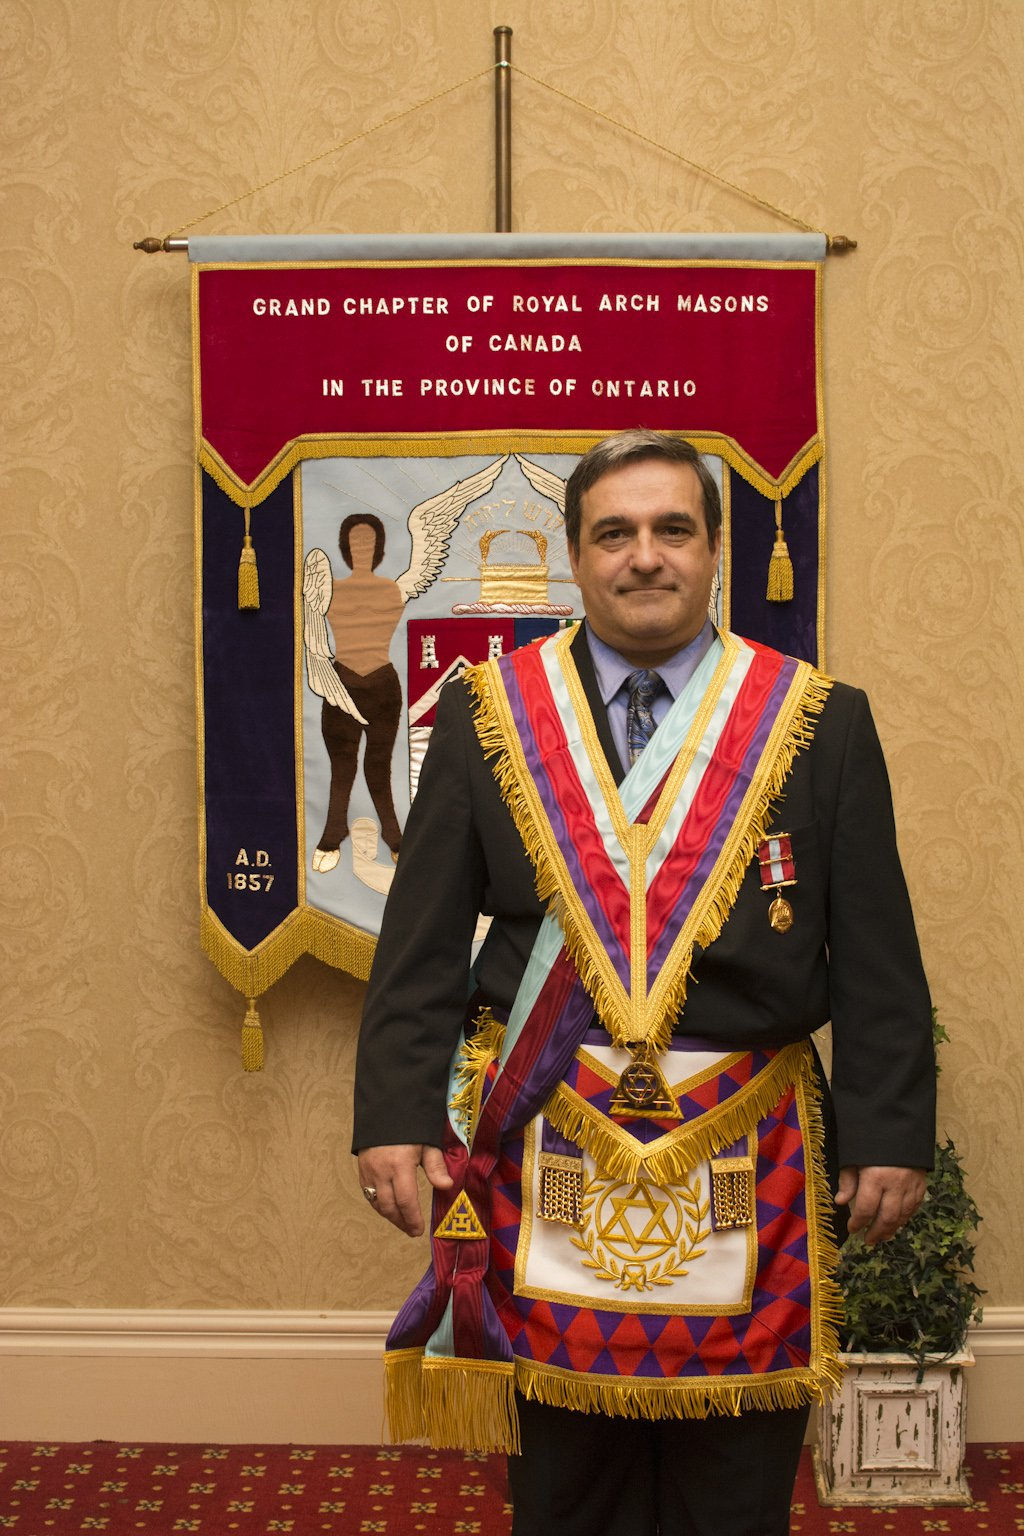 District 13 – Royal Arch Masons